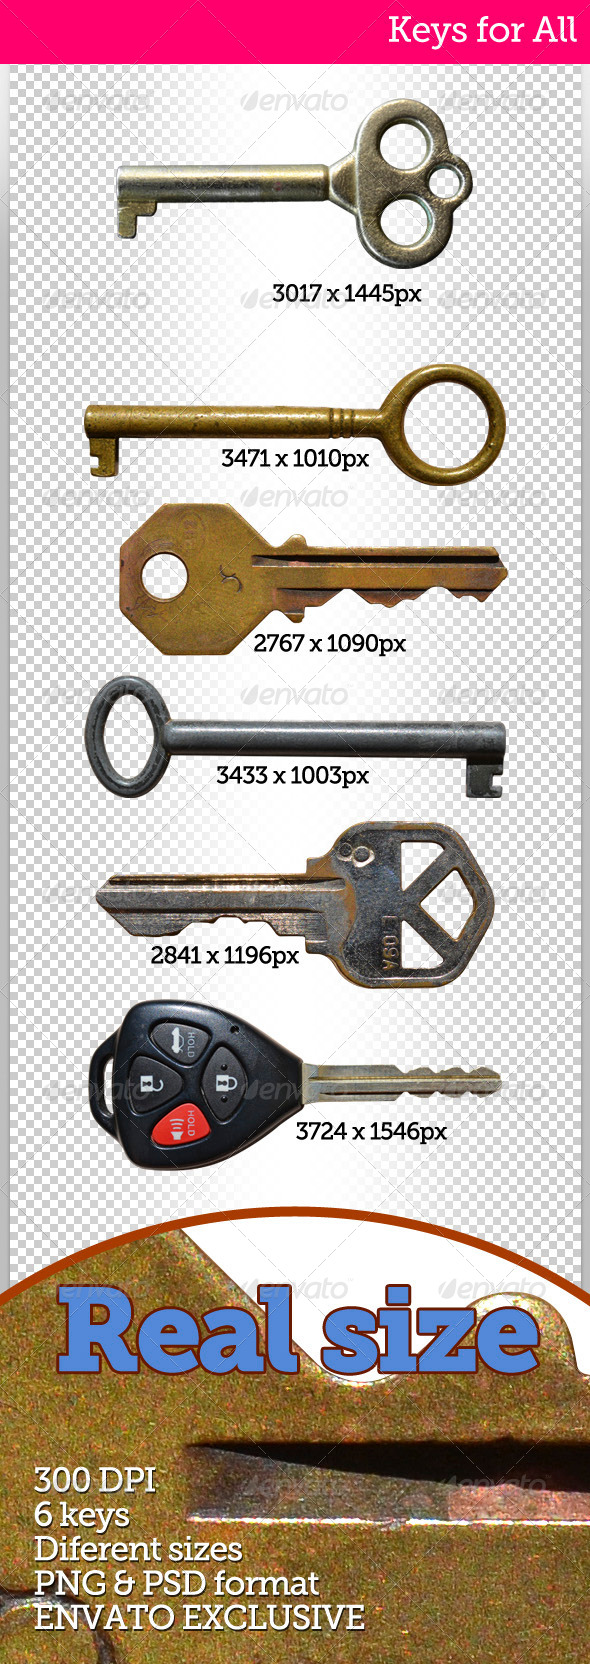 GraphicRiver Keys for All 3597671